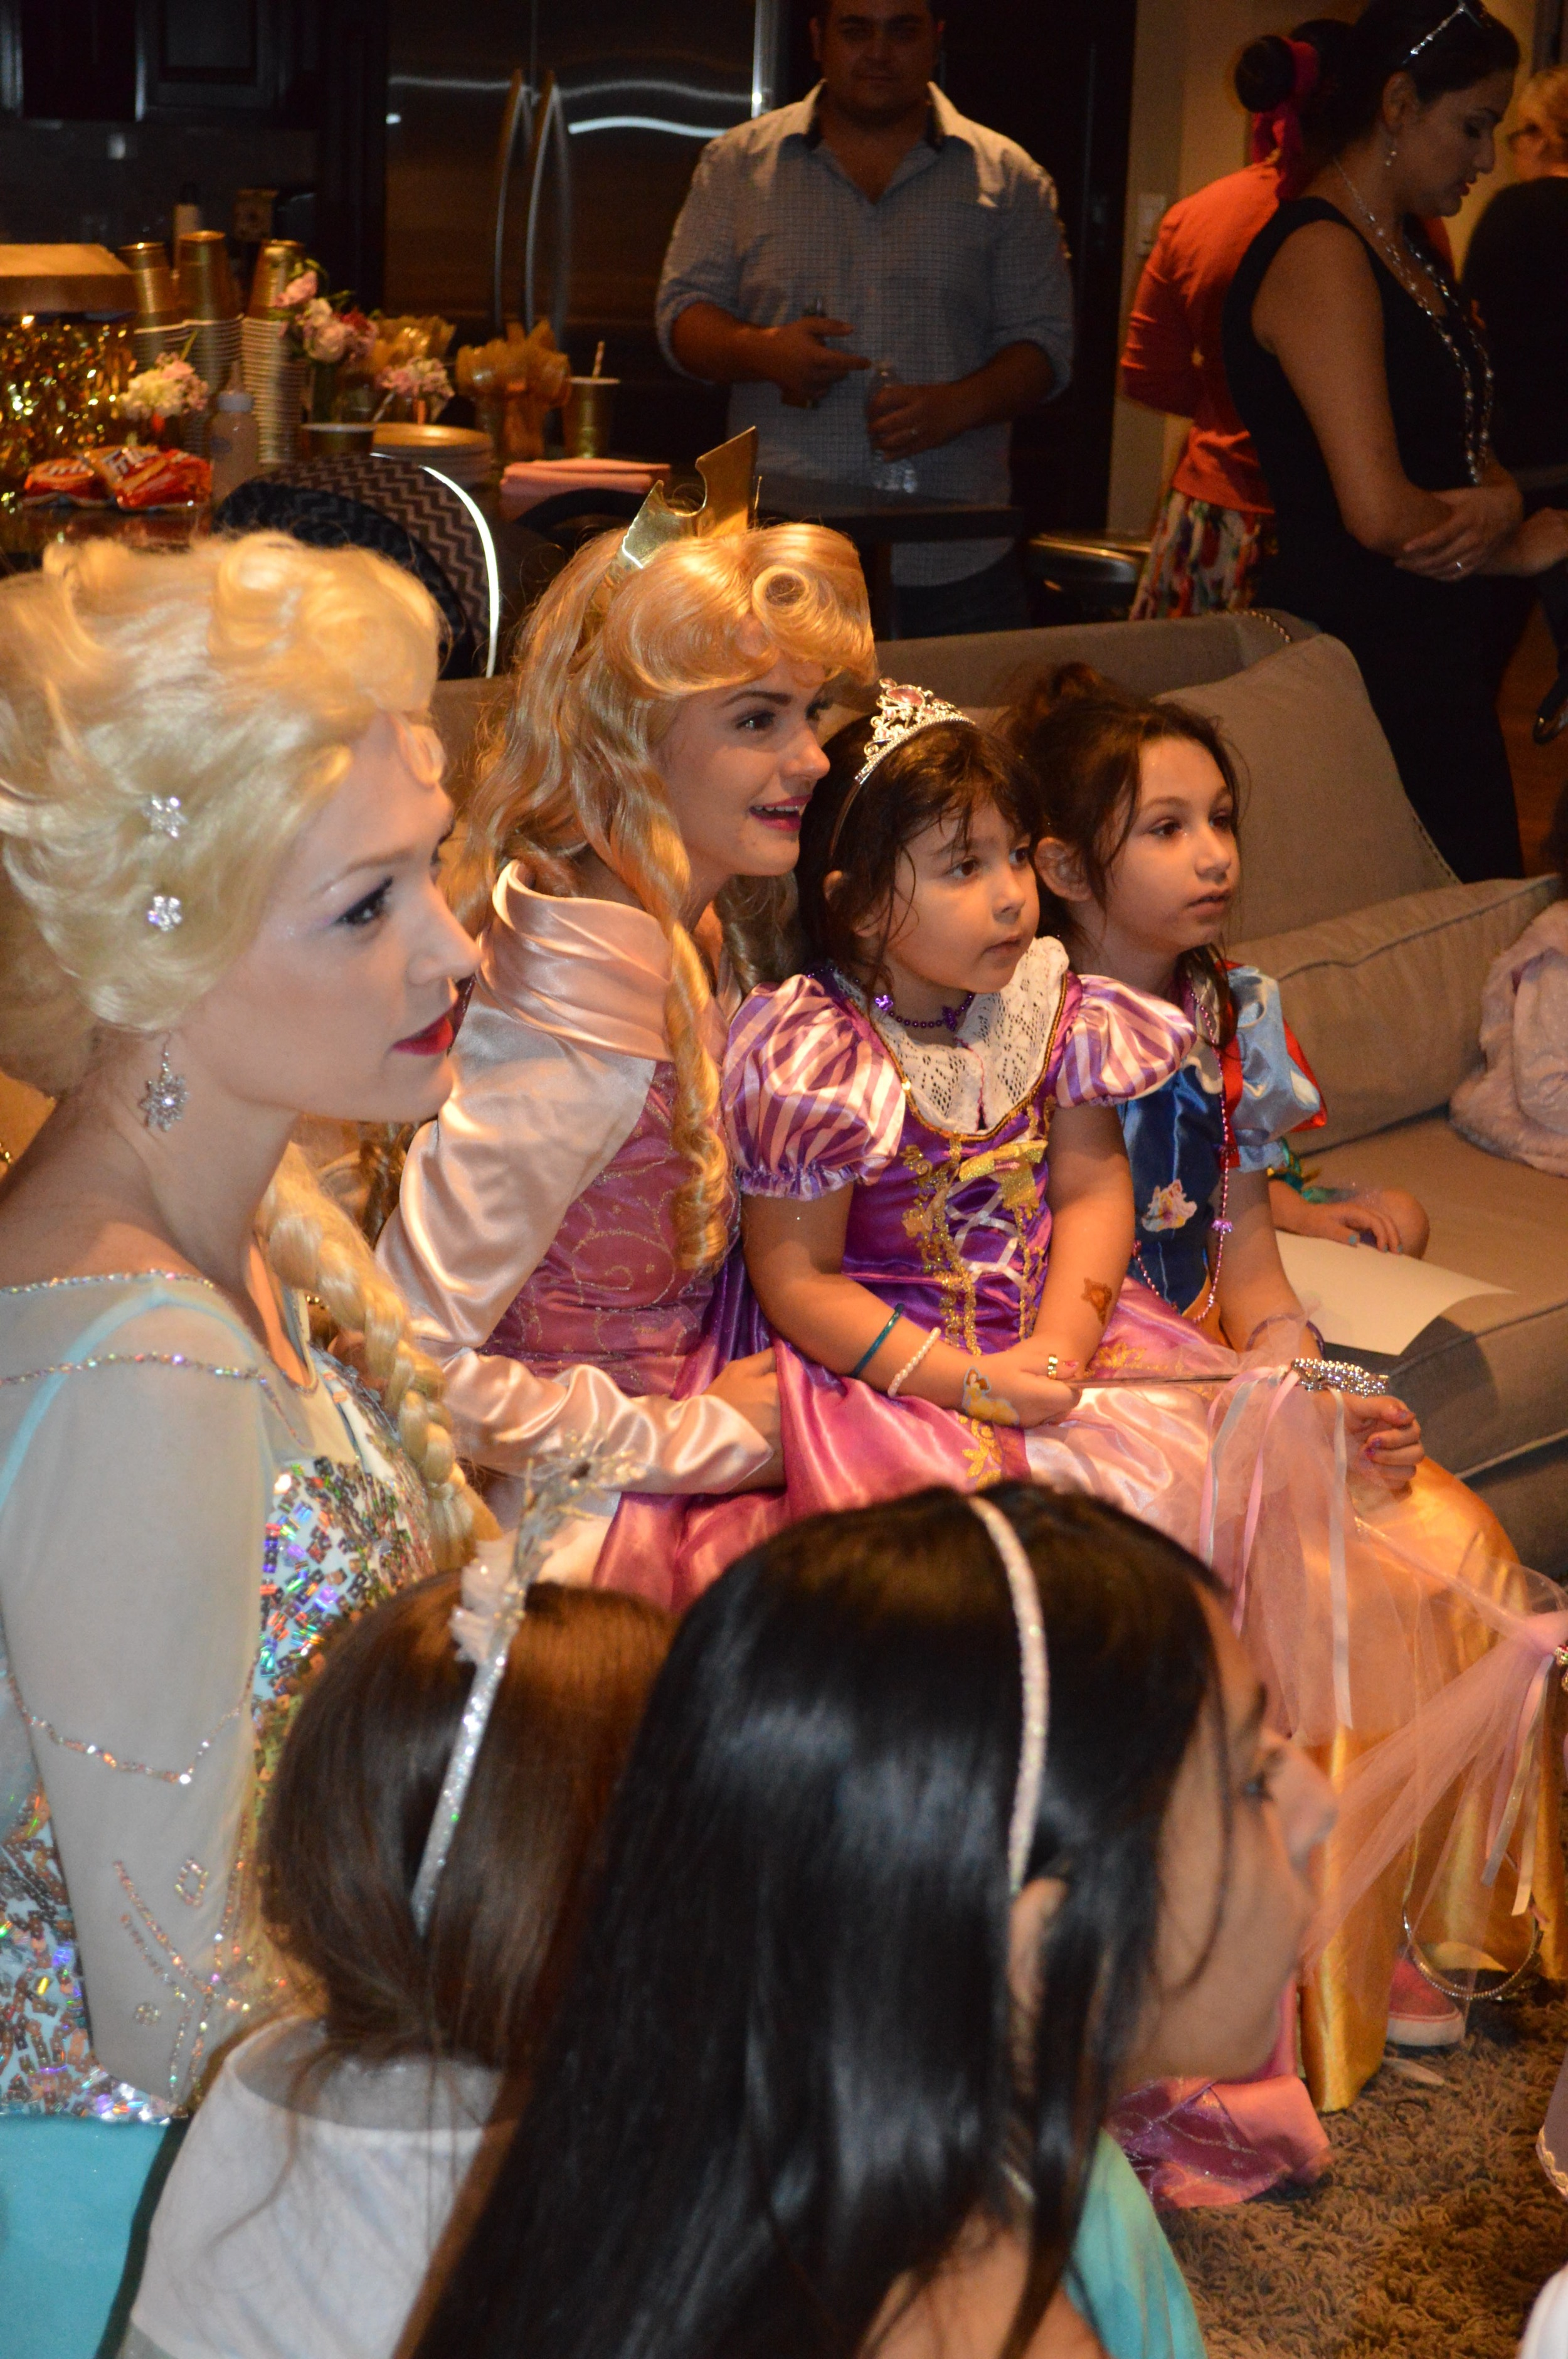 Sleeping Beauty and Elsa stayed to watch the puppet show with the kids!